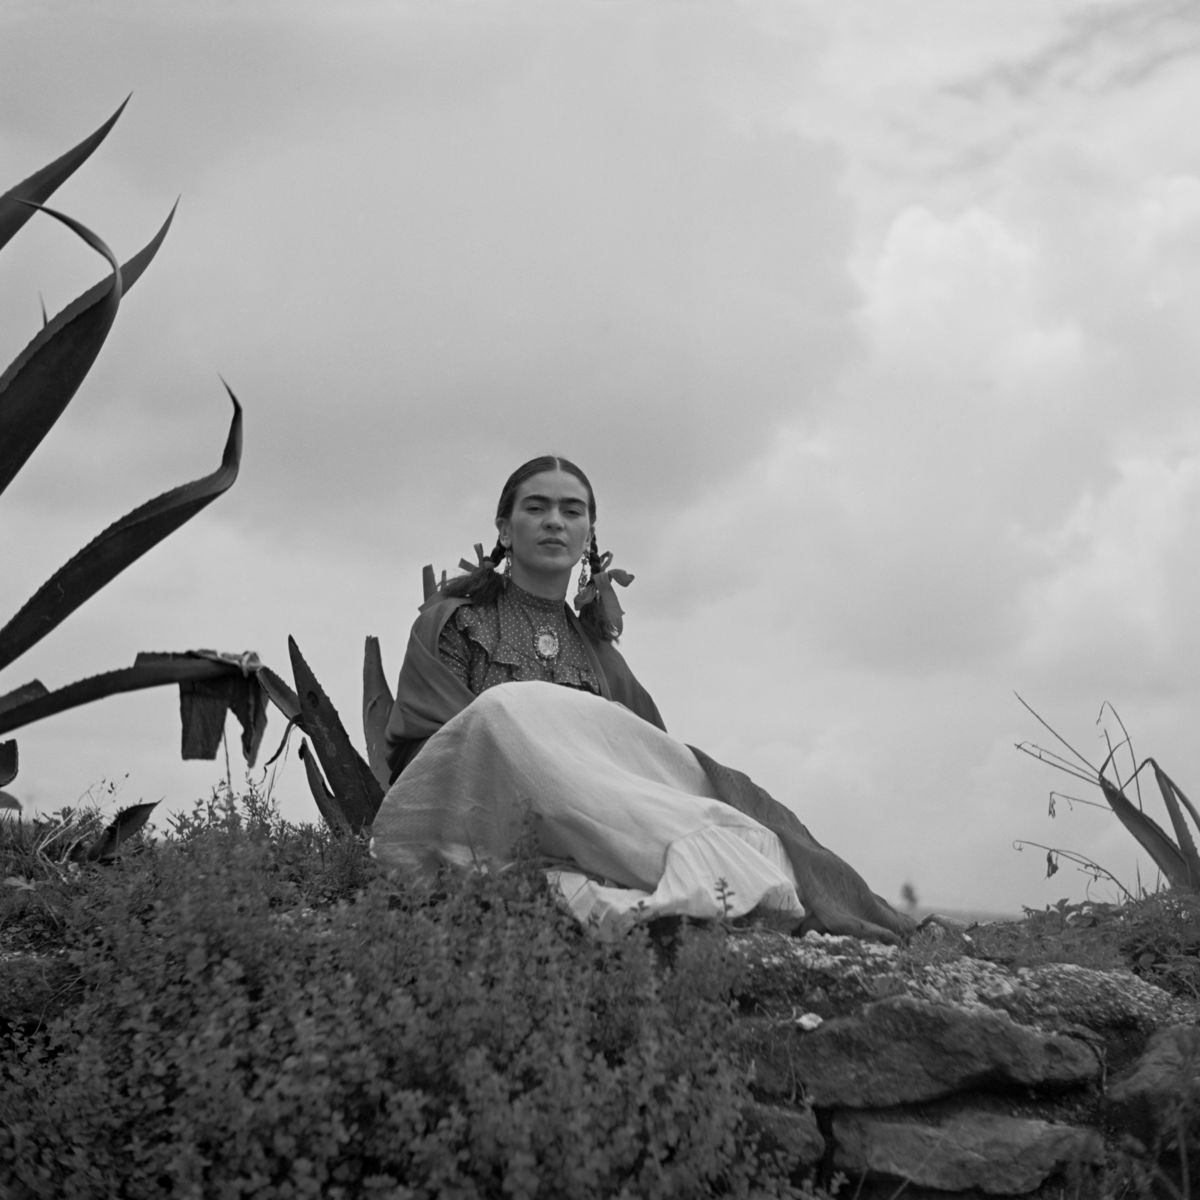 Frida Kahlo Seated Next to an Agave Plant by Toni Frissell - 1937